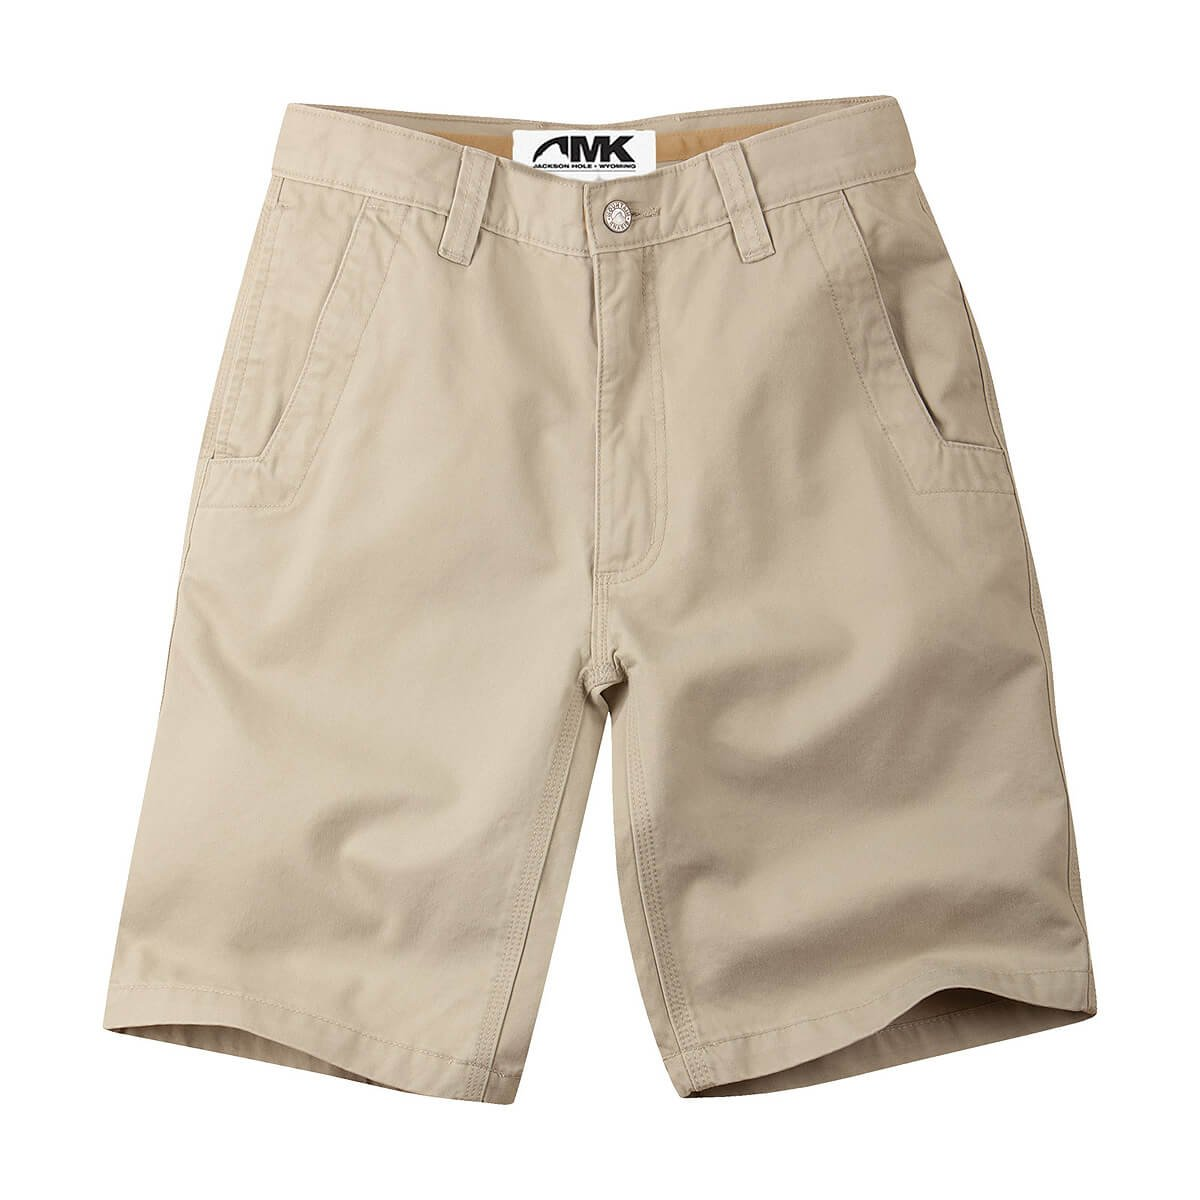 Mountain Khakis Men's Teton Twill Short Relaxed Fit, Sand, 38 W 8in